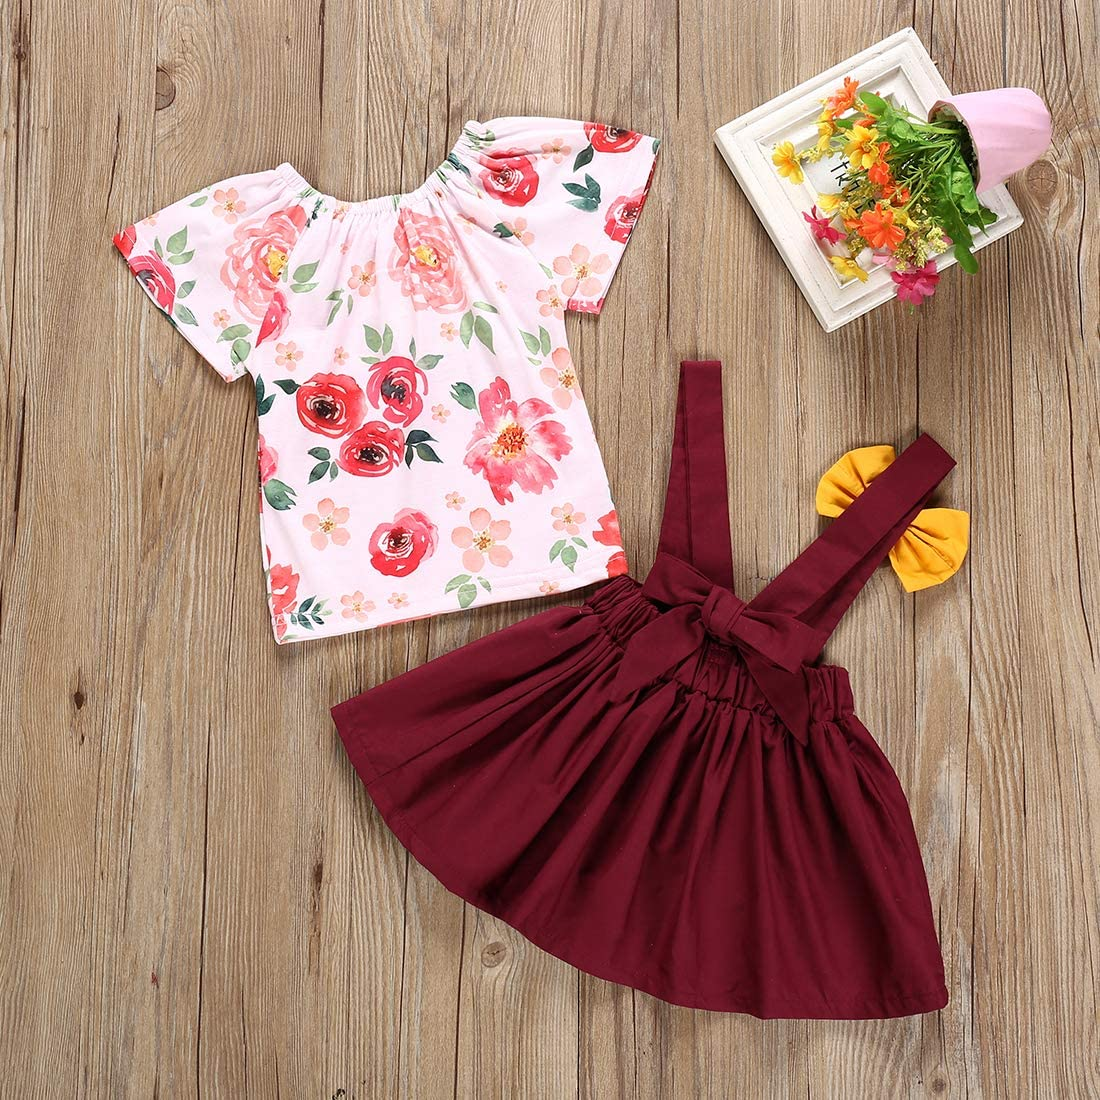 Toddler Baby Girl 2pcs Outfits Floral Short Sleeve Ruffled T-Shirt Top+Suspender A-Line Skirt Overalls Set